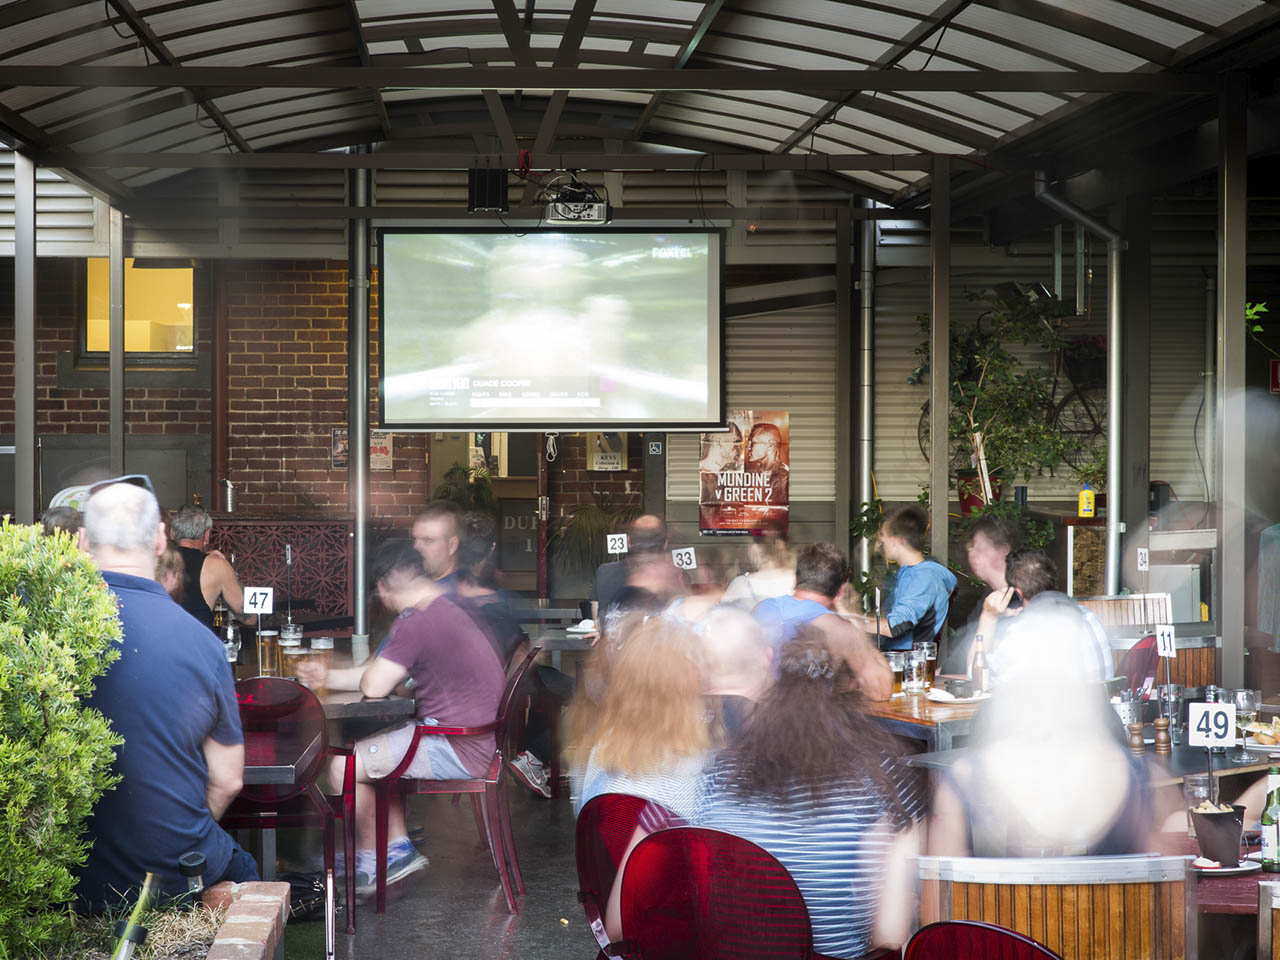 Outside Function Area with People Sitting with TV Screen